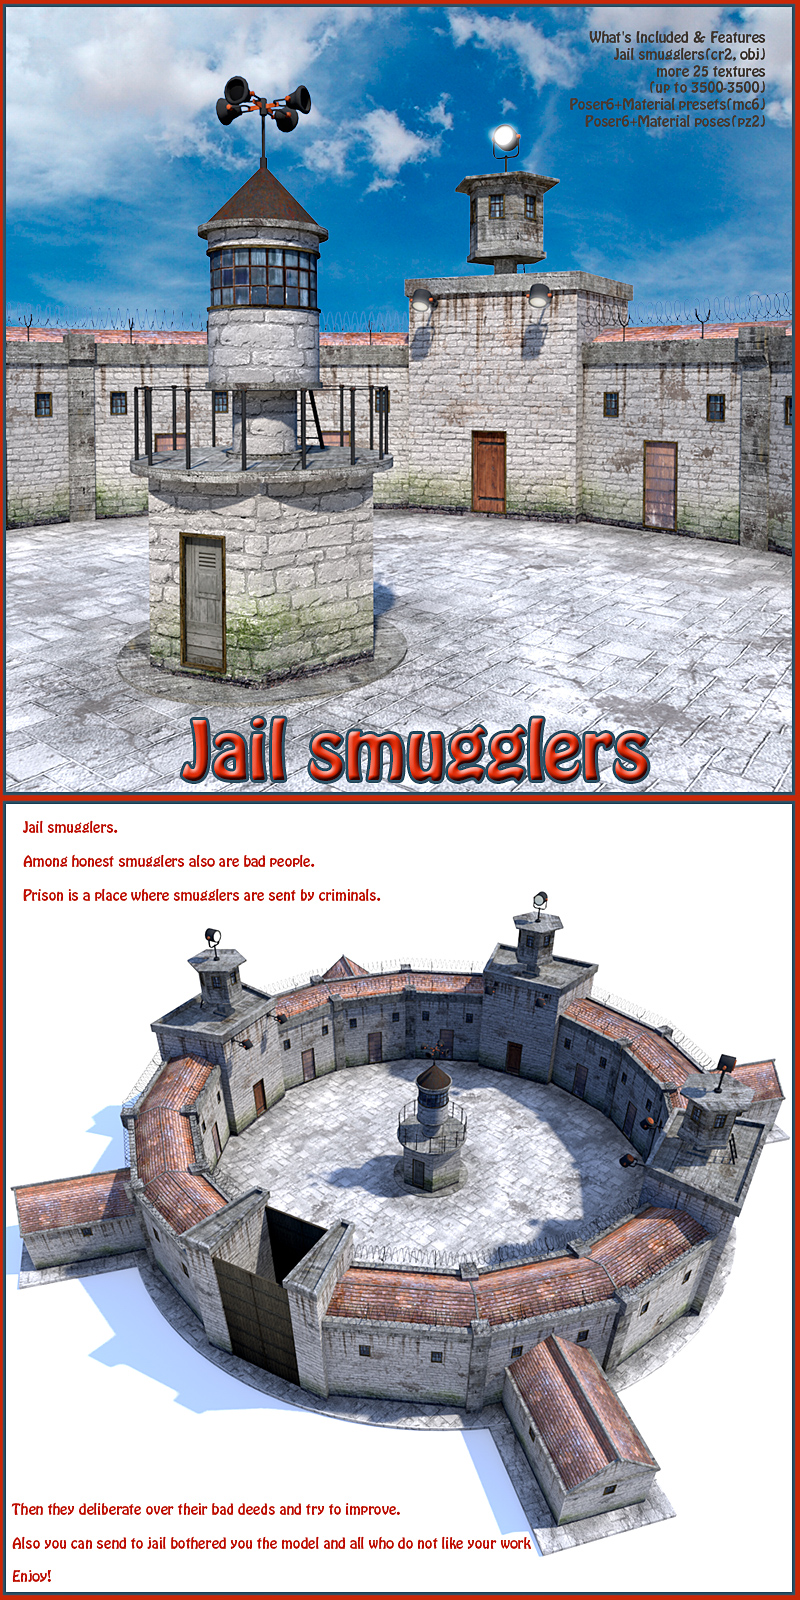 Jail smugglers by 1971s